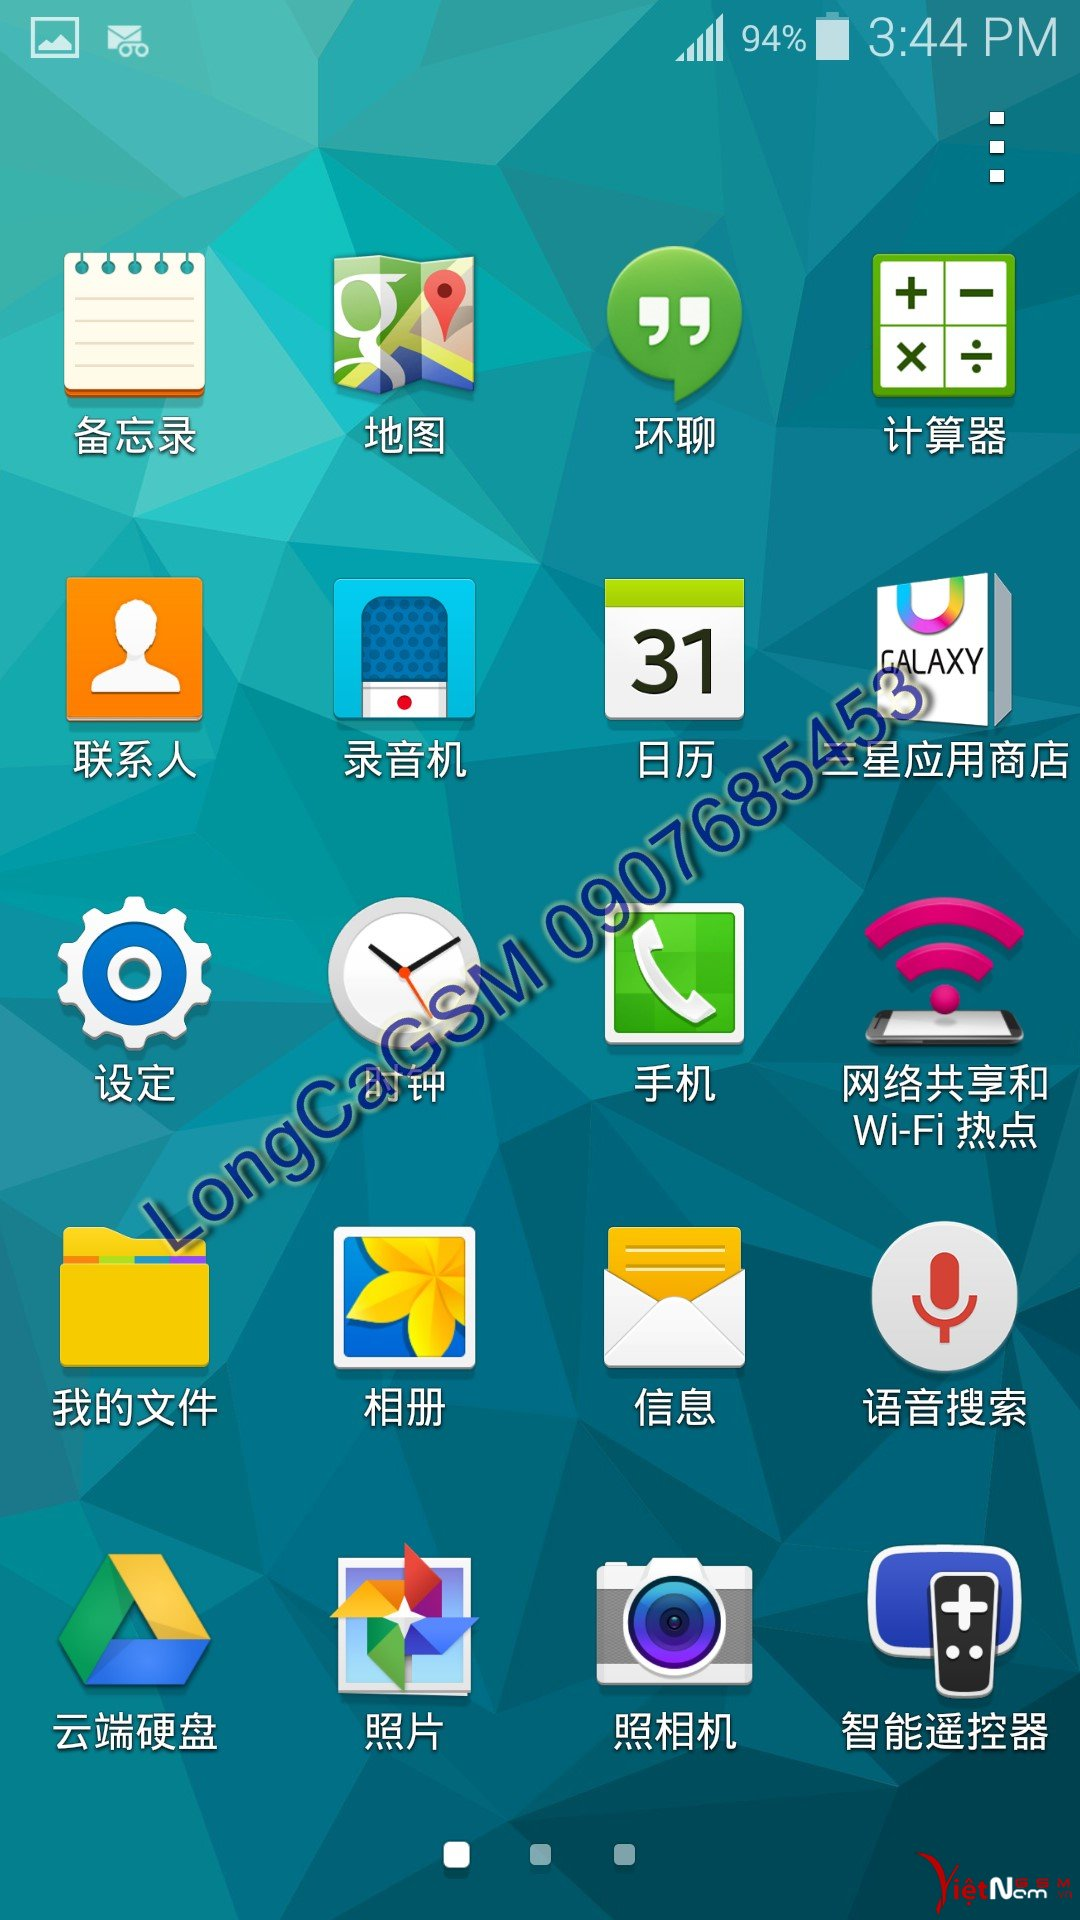 Screenshot_2014-10-28-15-44-06.jpg